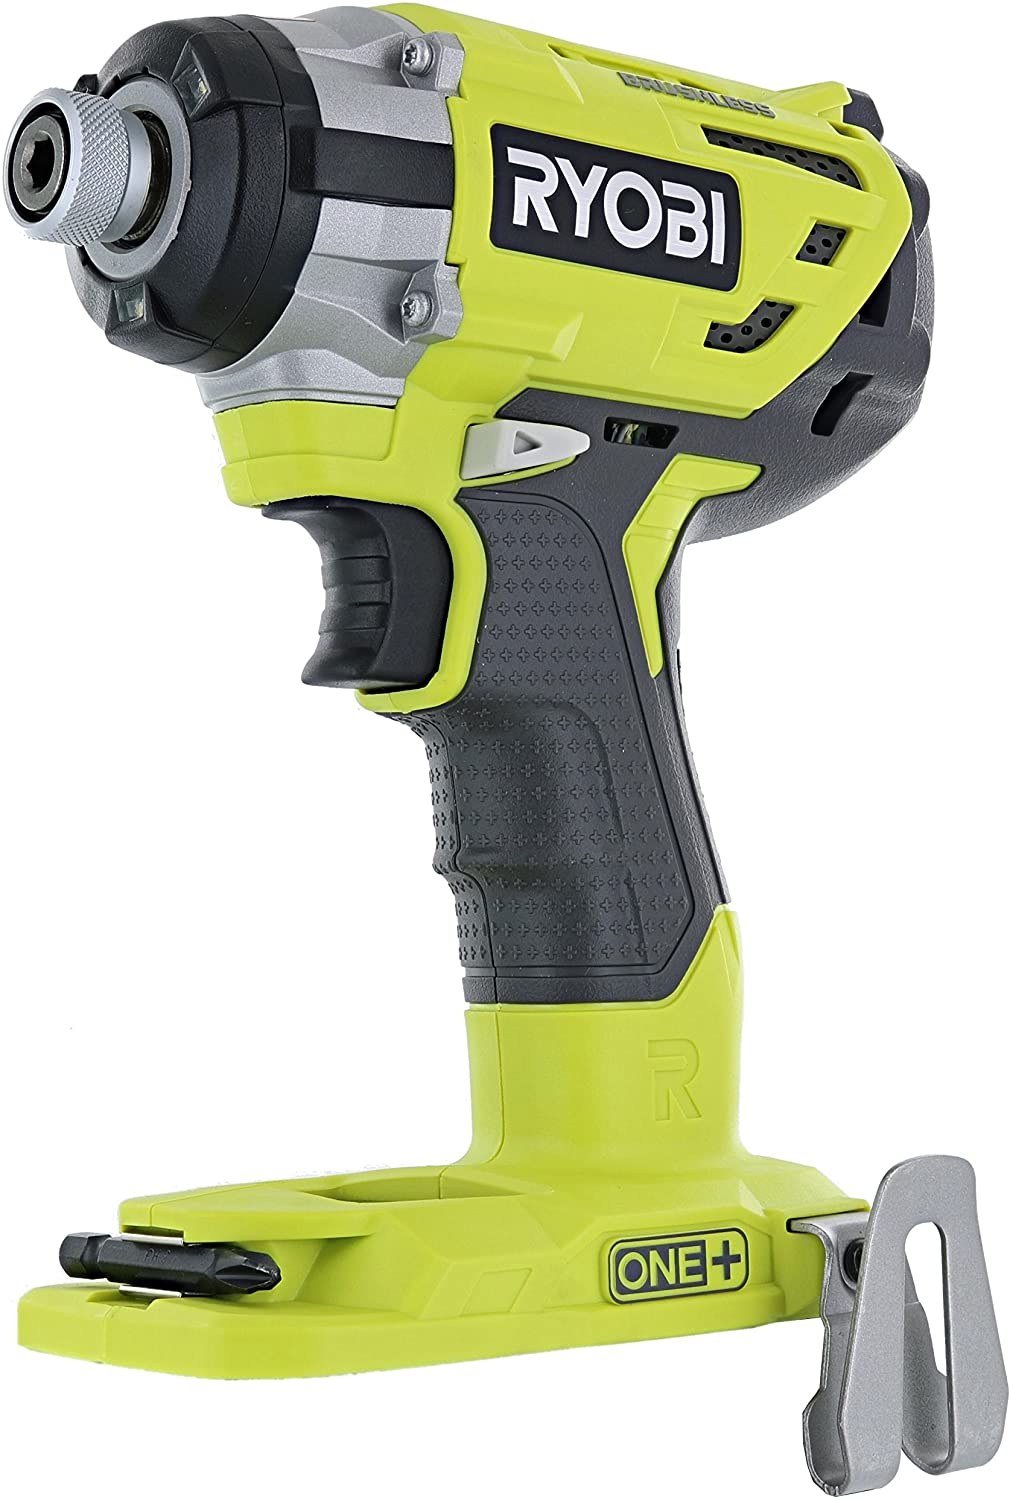 Ryobi P238 18V One Brushless 1 4 2,000 Inch Pound, 3,100 RPM Cordless Impact Driver w Gripzone Overmold, Belt Clip, and Tri-Beam LED Power Tool Only, Battery Not Included